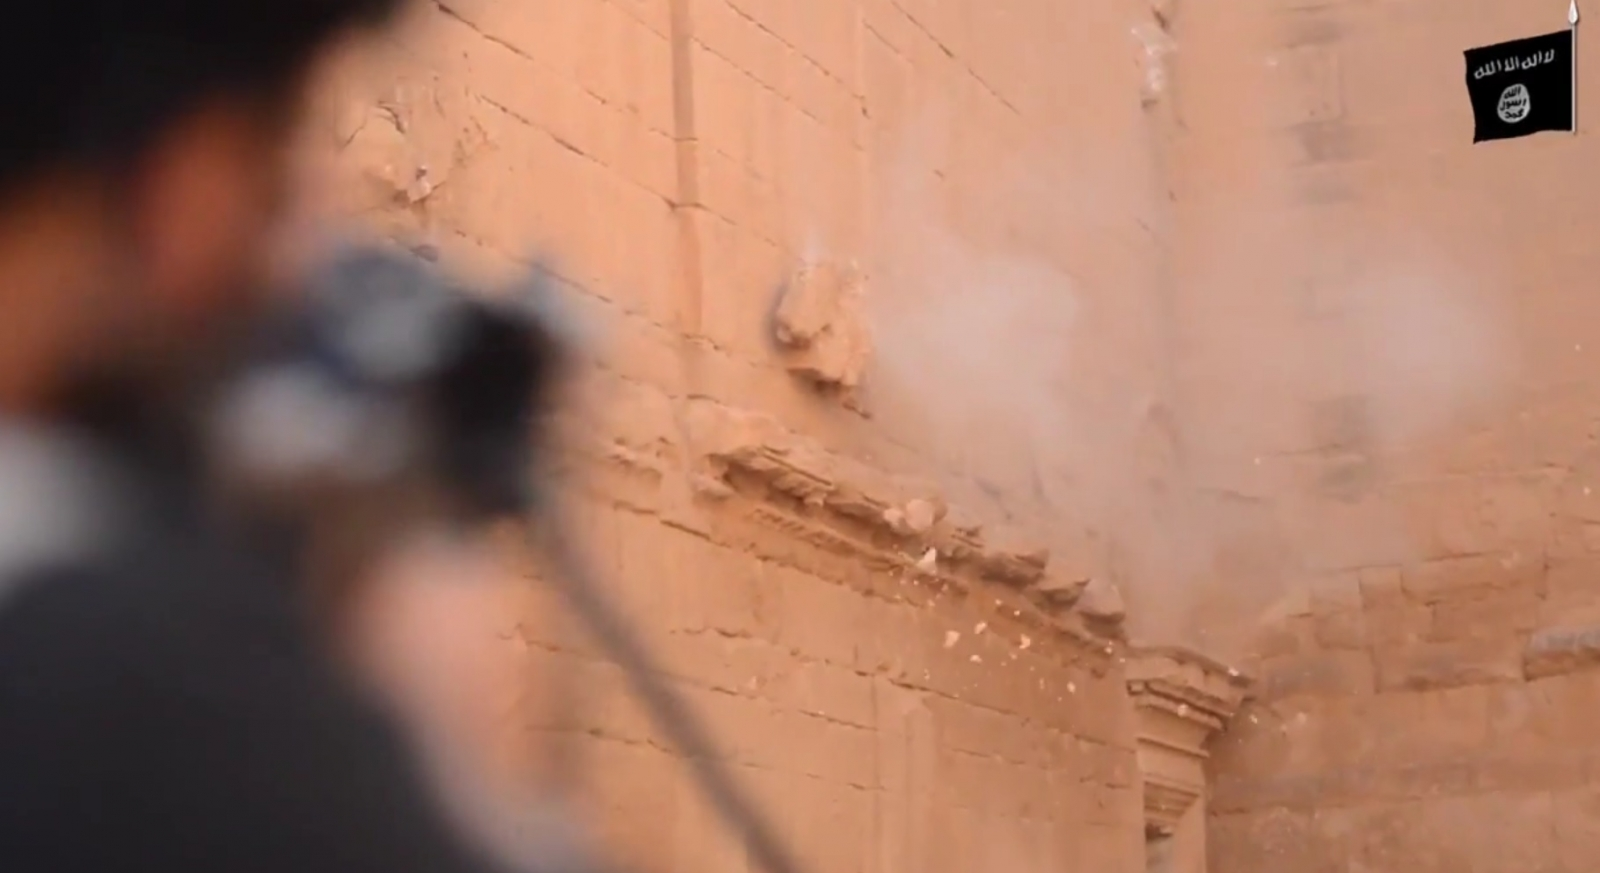 ISIS destroys Hatra Unesco Iraq artefacts